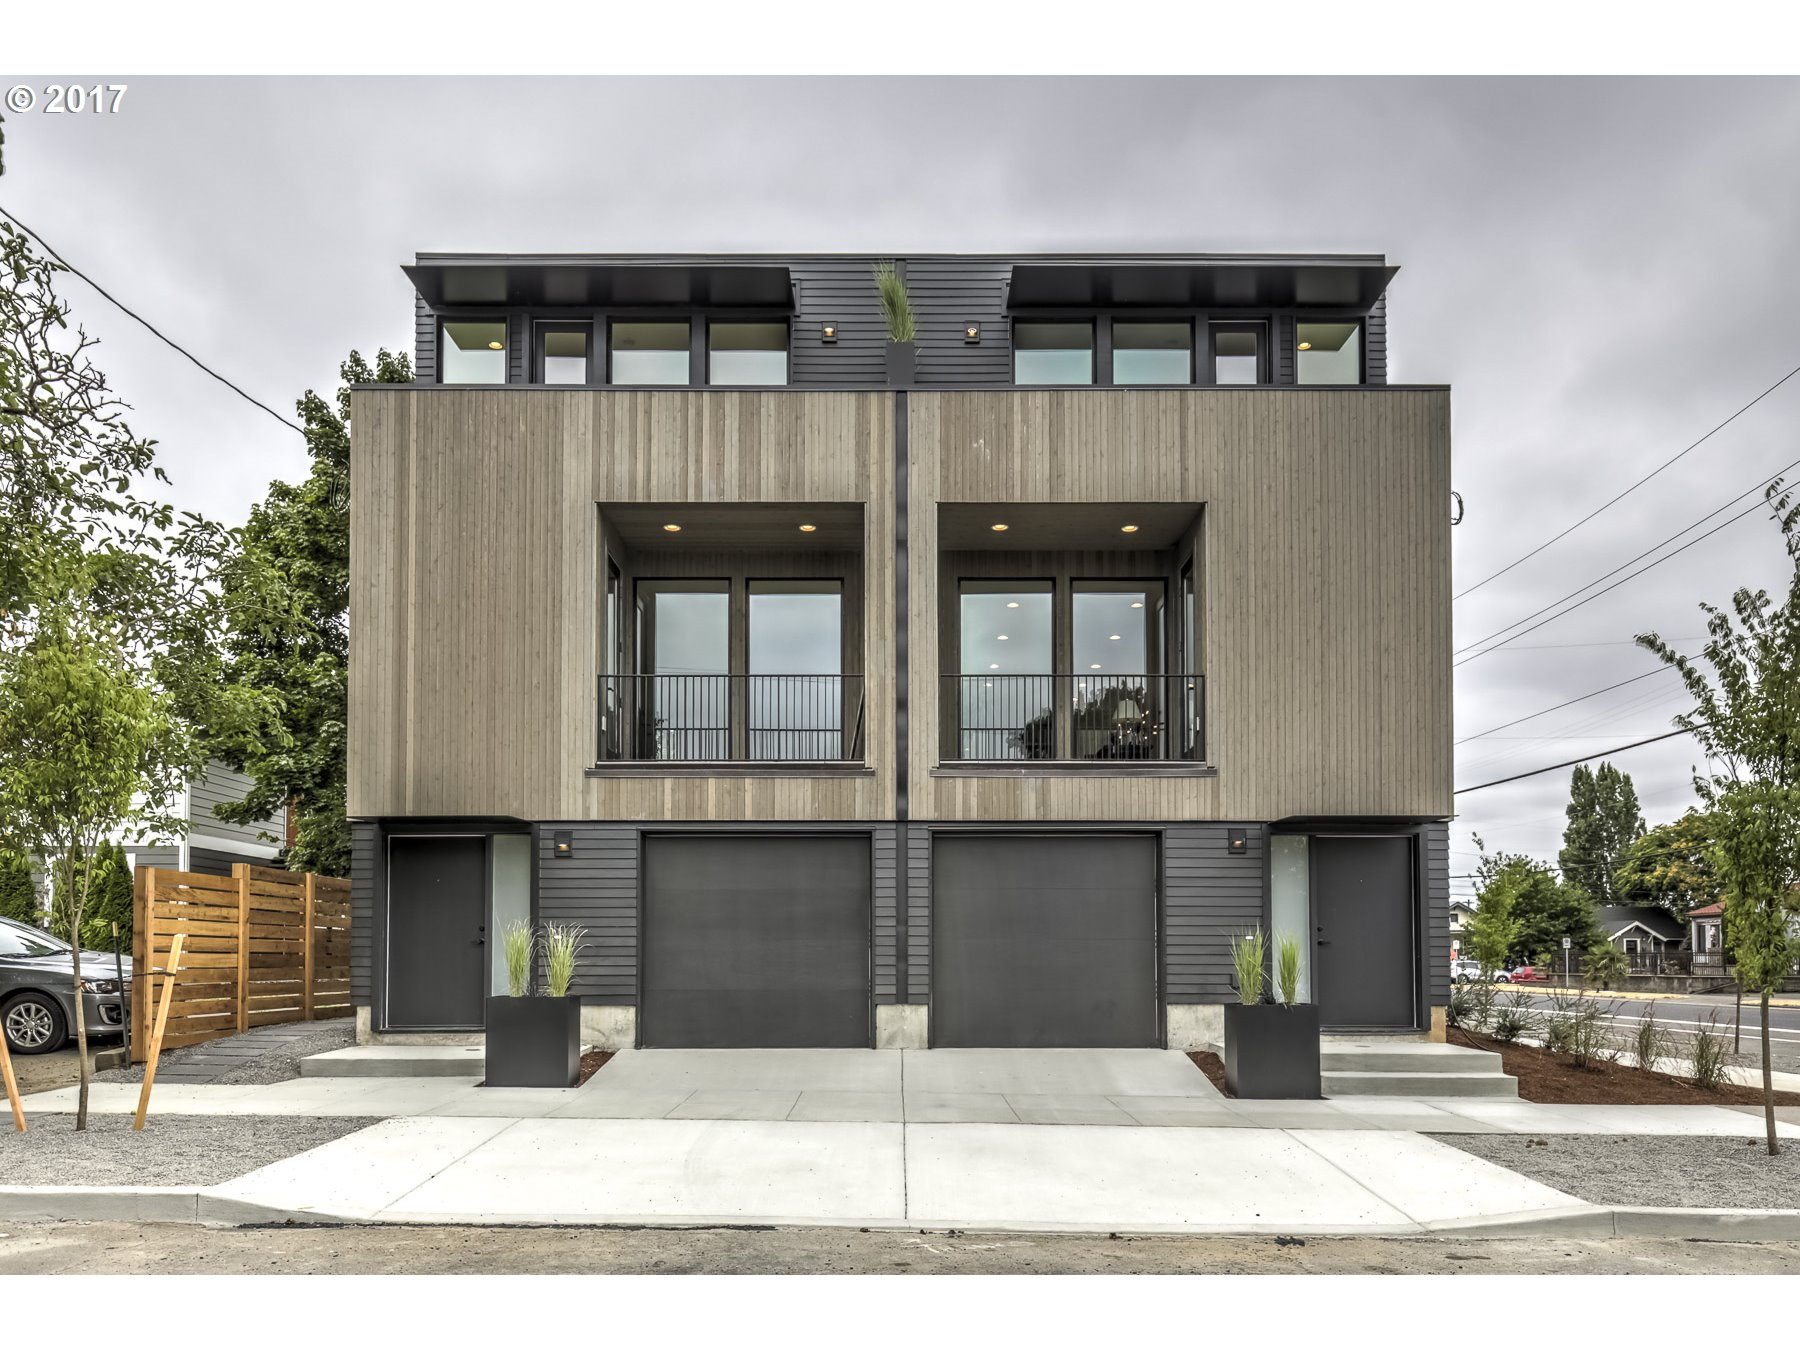 6485 N WILBUR AVE, Portland, OR 97217